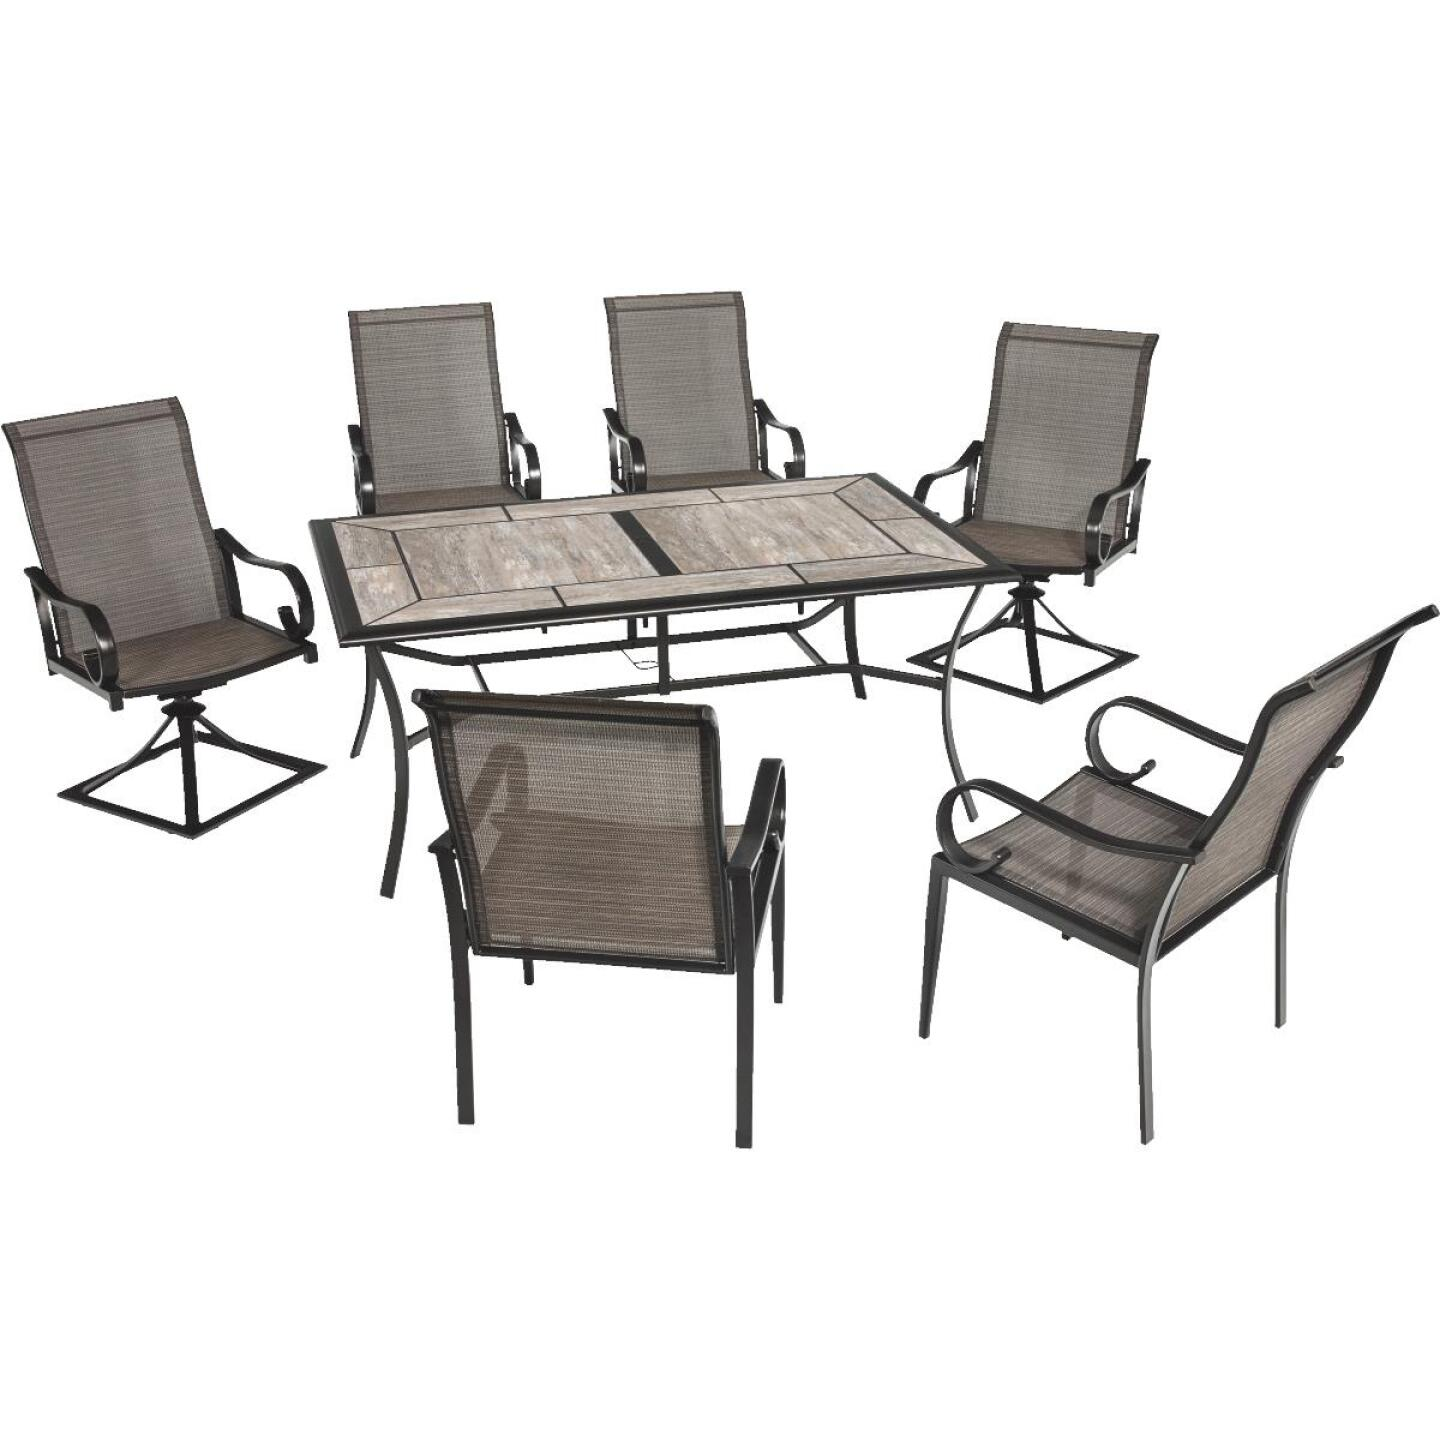 Outdoor Expressions Berkshire 7-Piece Dining Set Image 94